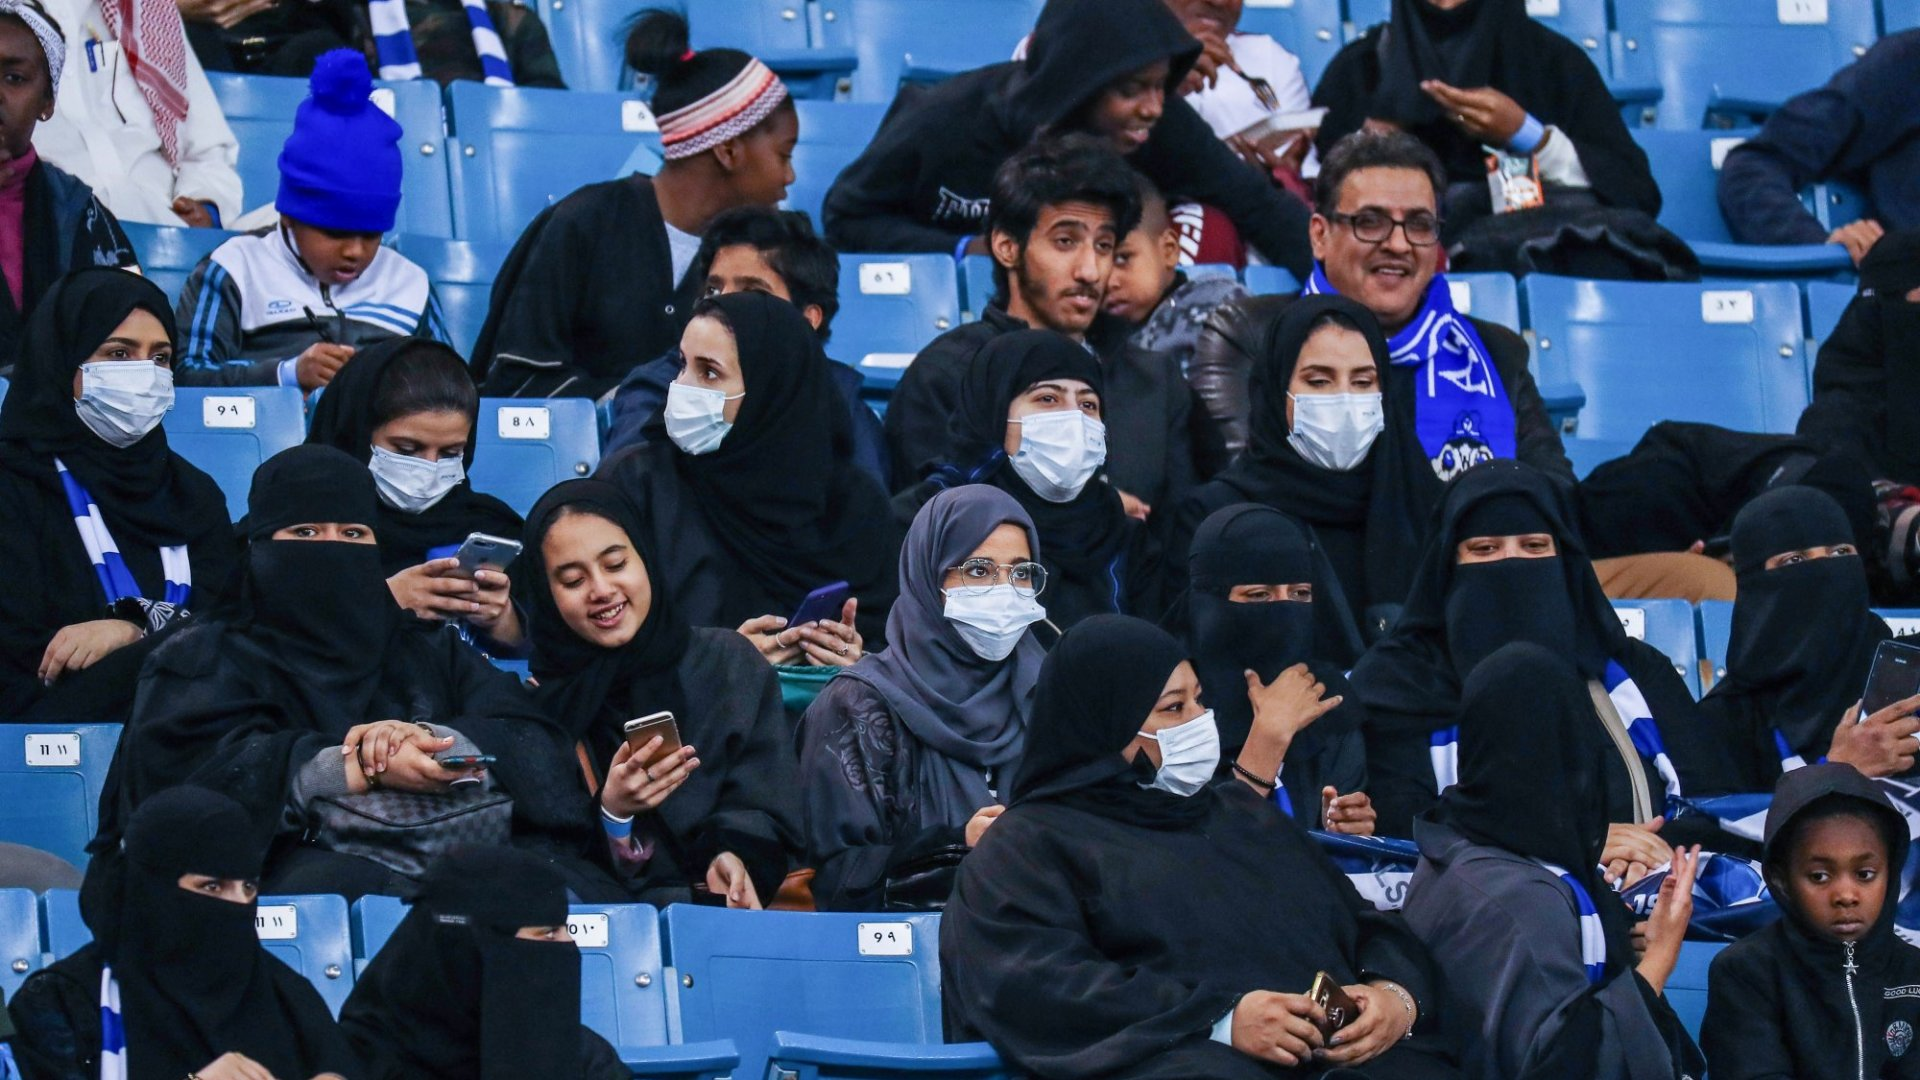 Progress For Women in Saudi Arabia Allows Them To Enter A Football Stadium For The First Time. (And They're Calling It a Milestone).